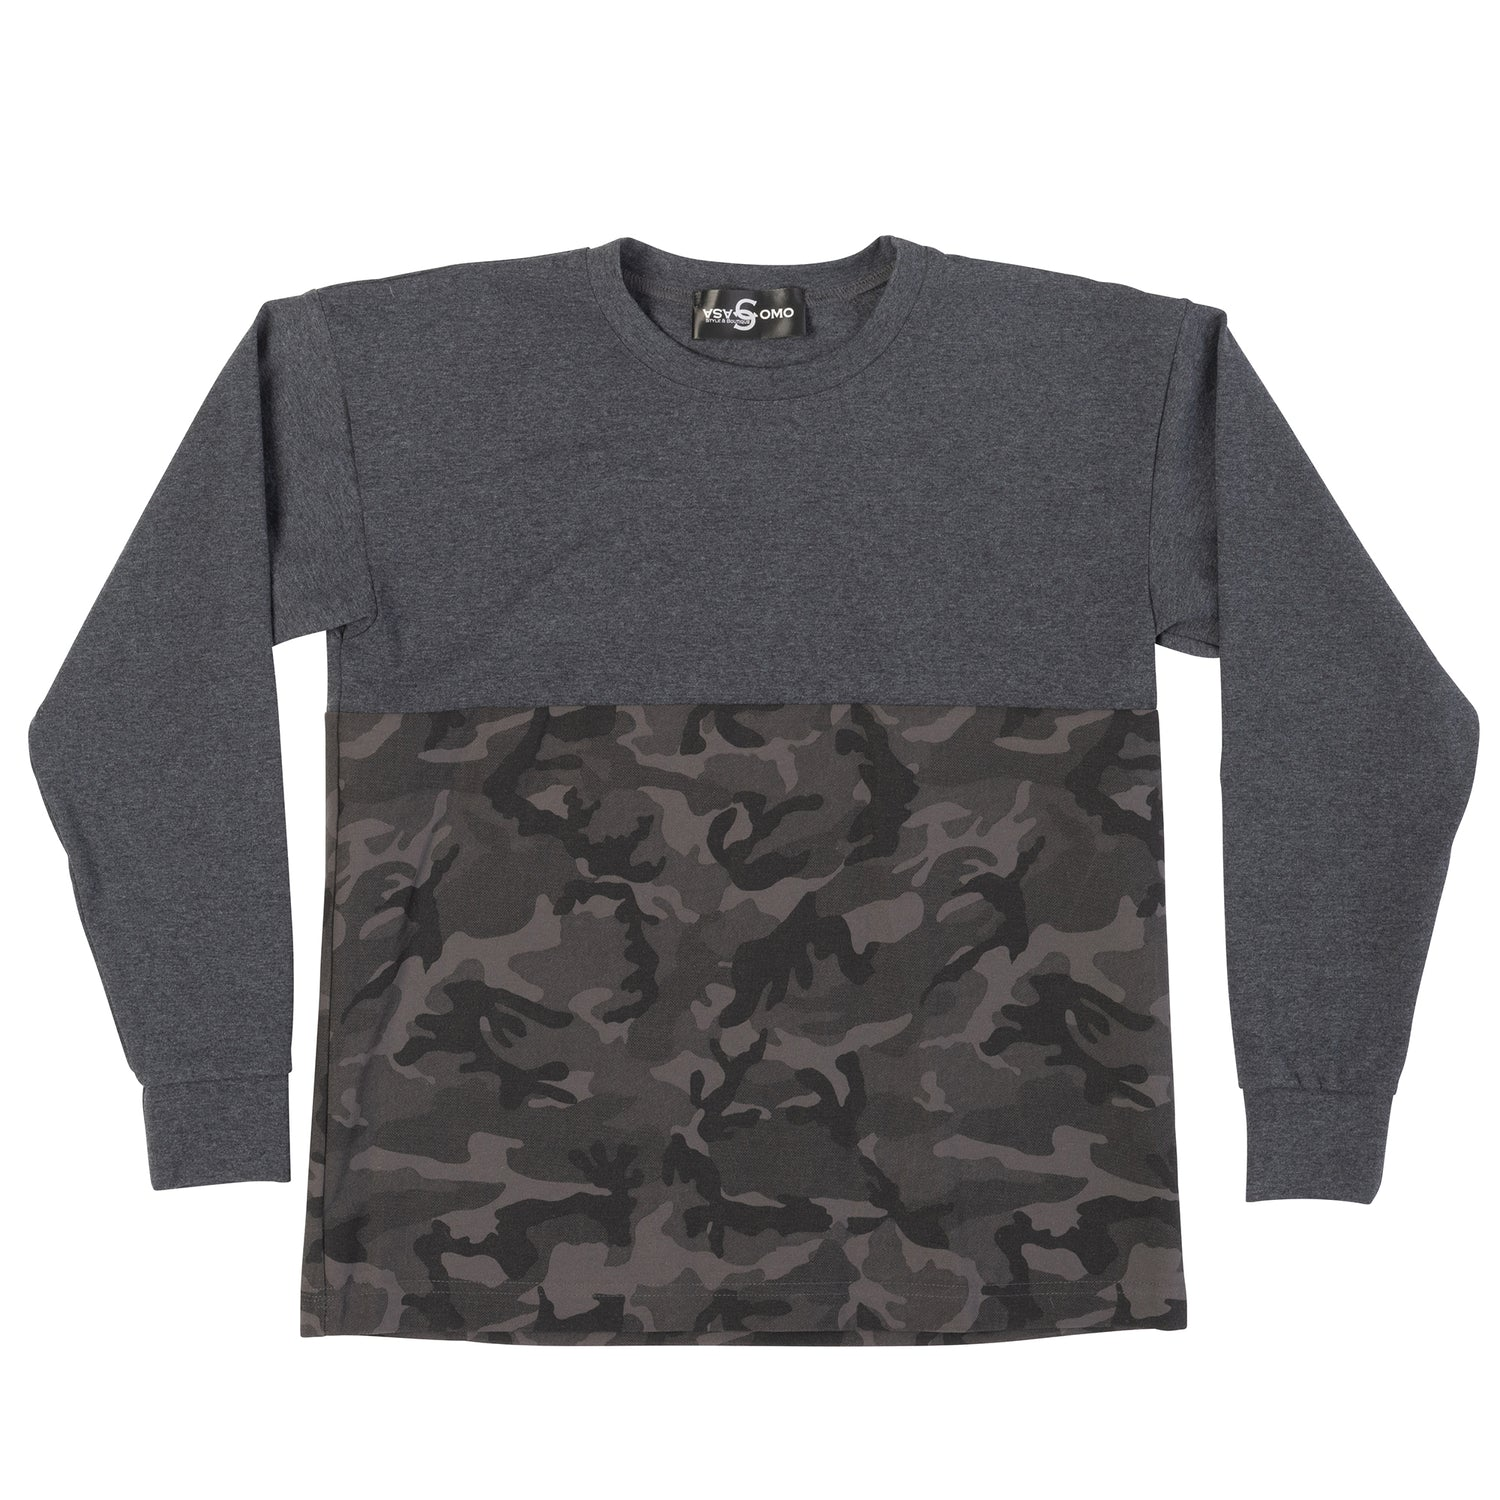 Camouflage Print Long Sleeve T-shirt - casacomostyle